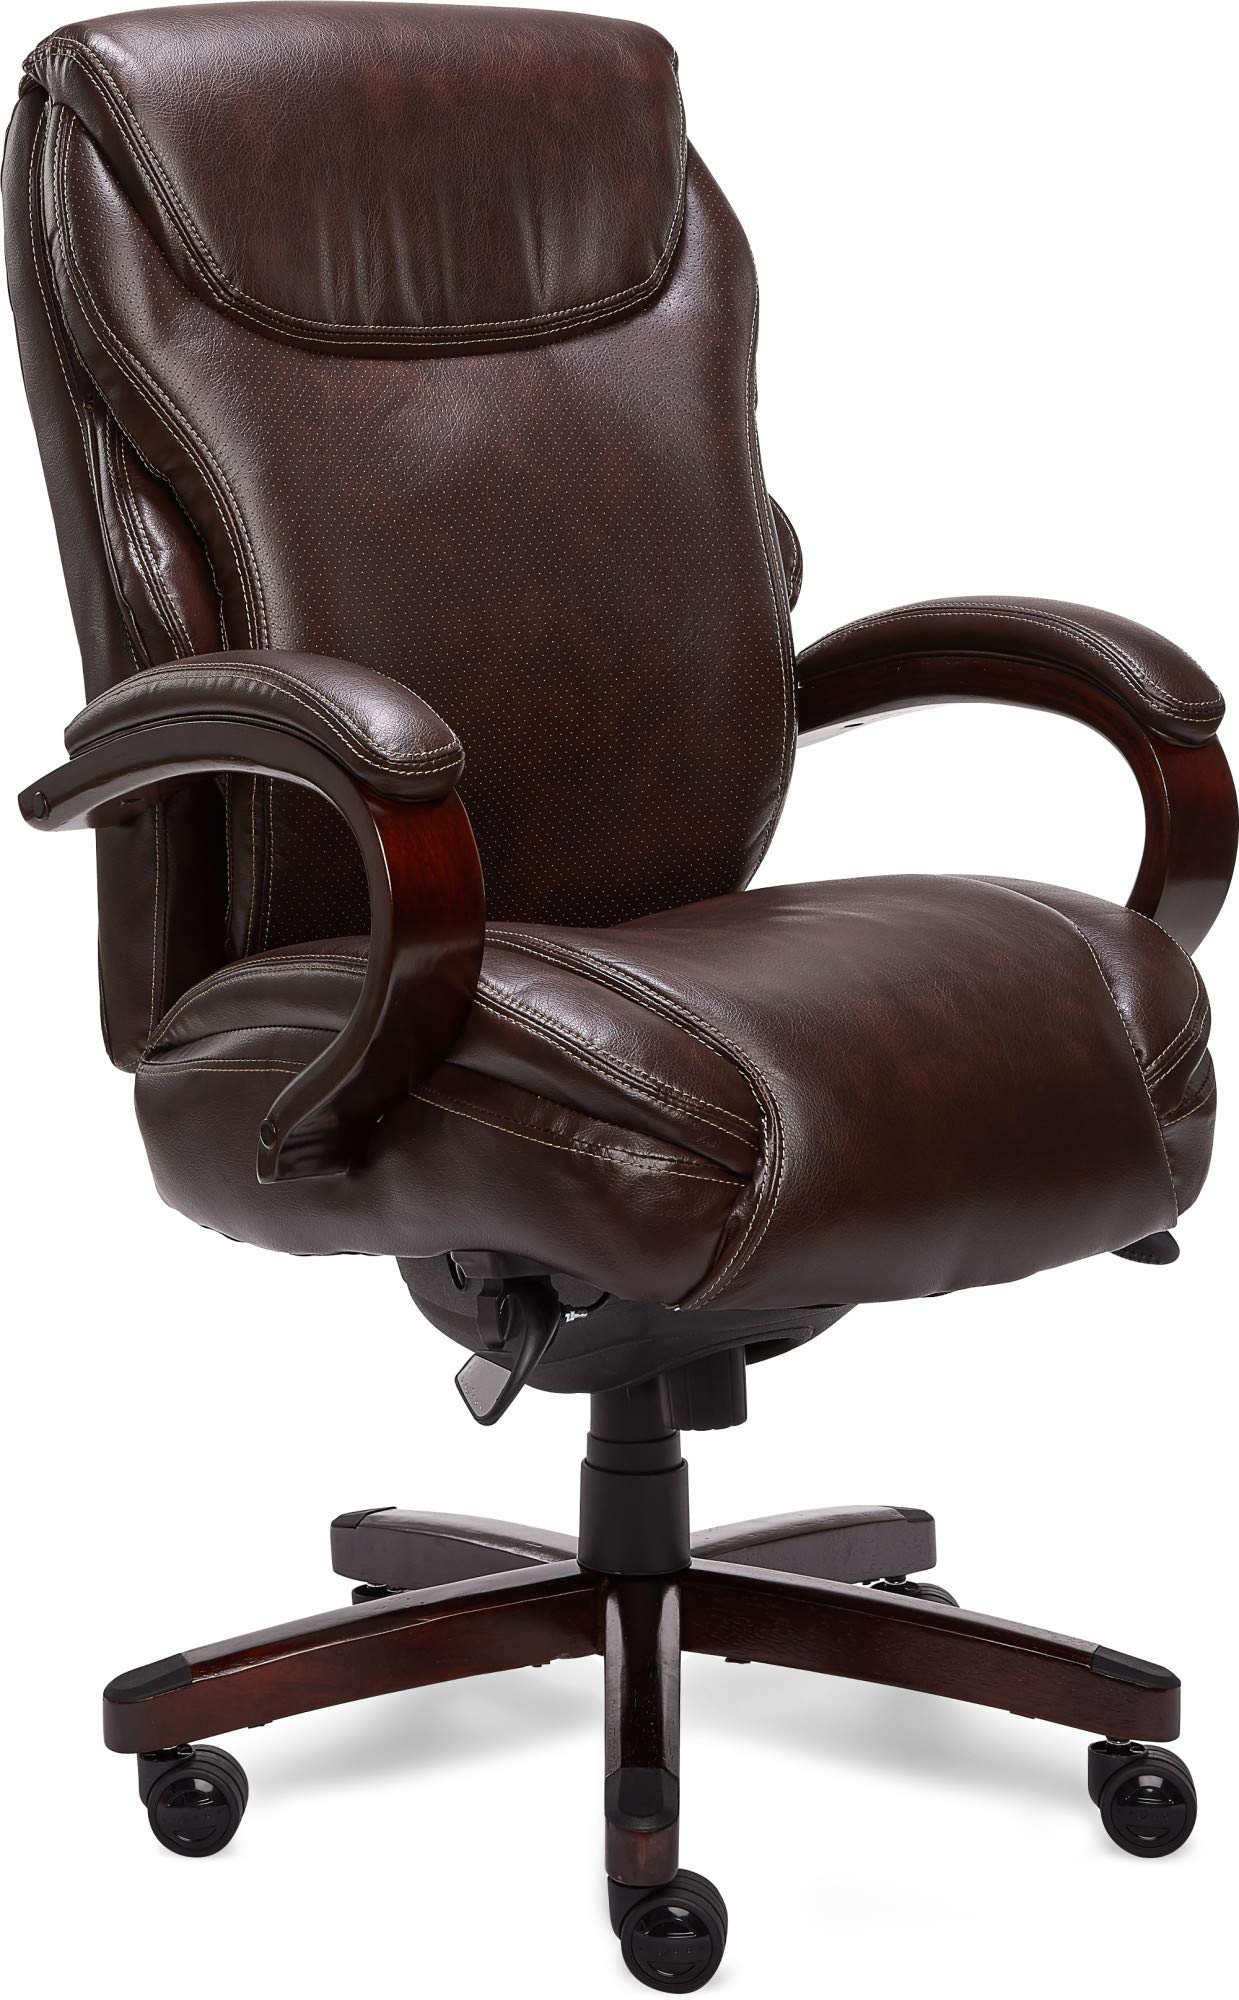 La Z Boy Hyland Executive Bonded Leather Office Chair by La-Z-Boy